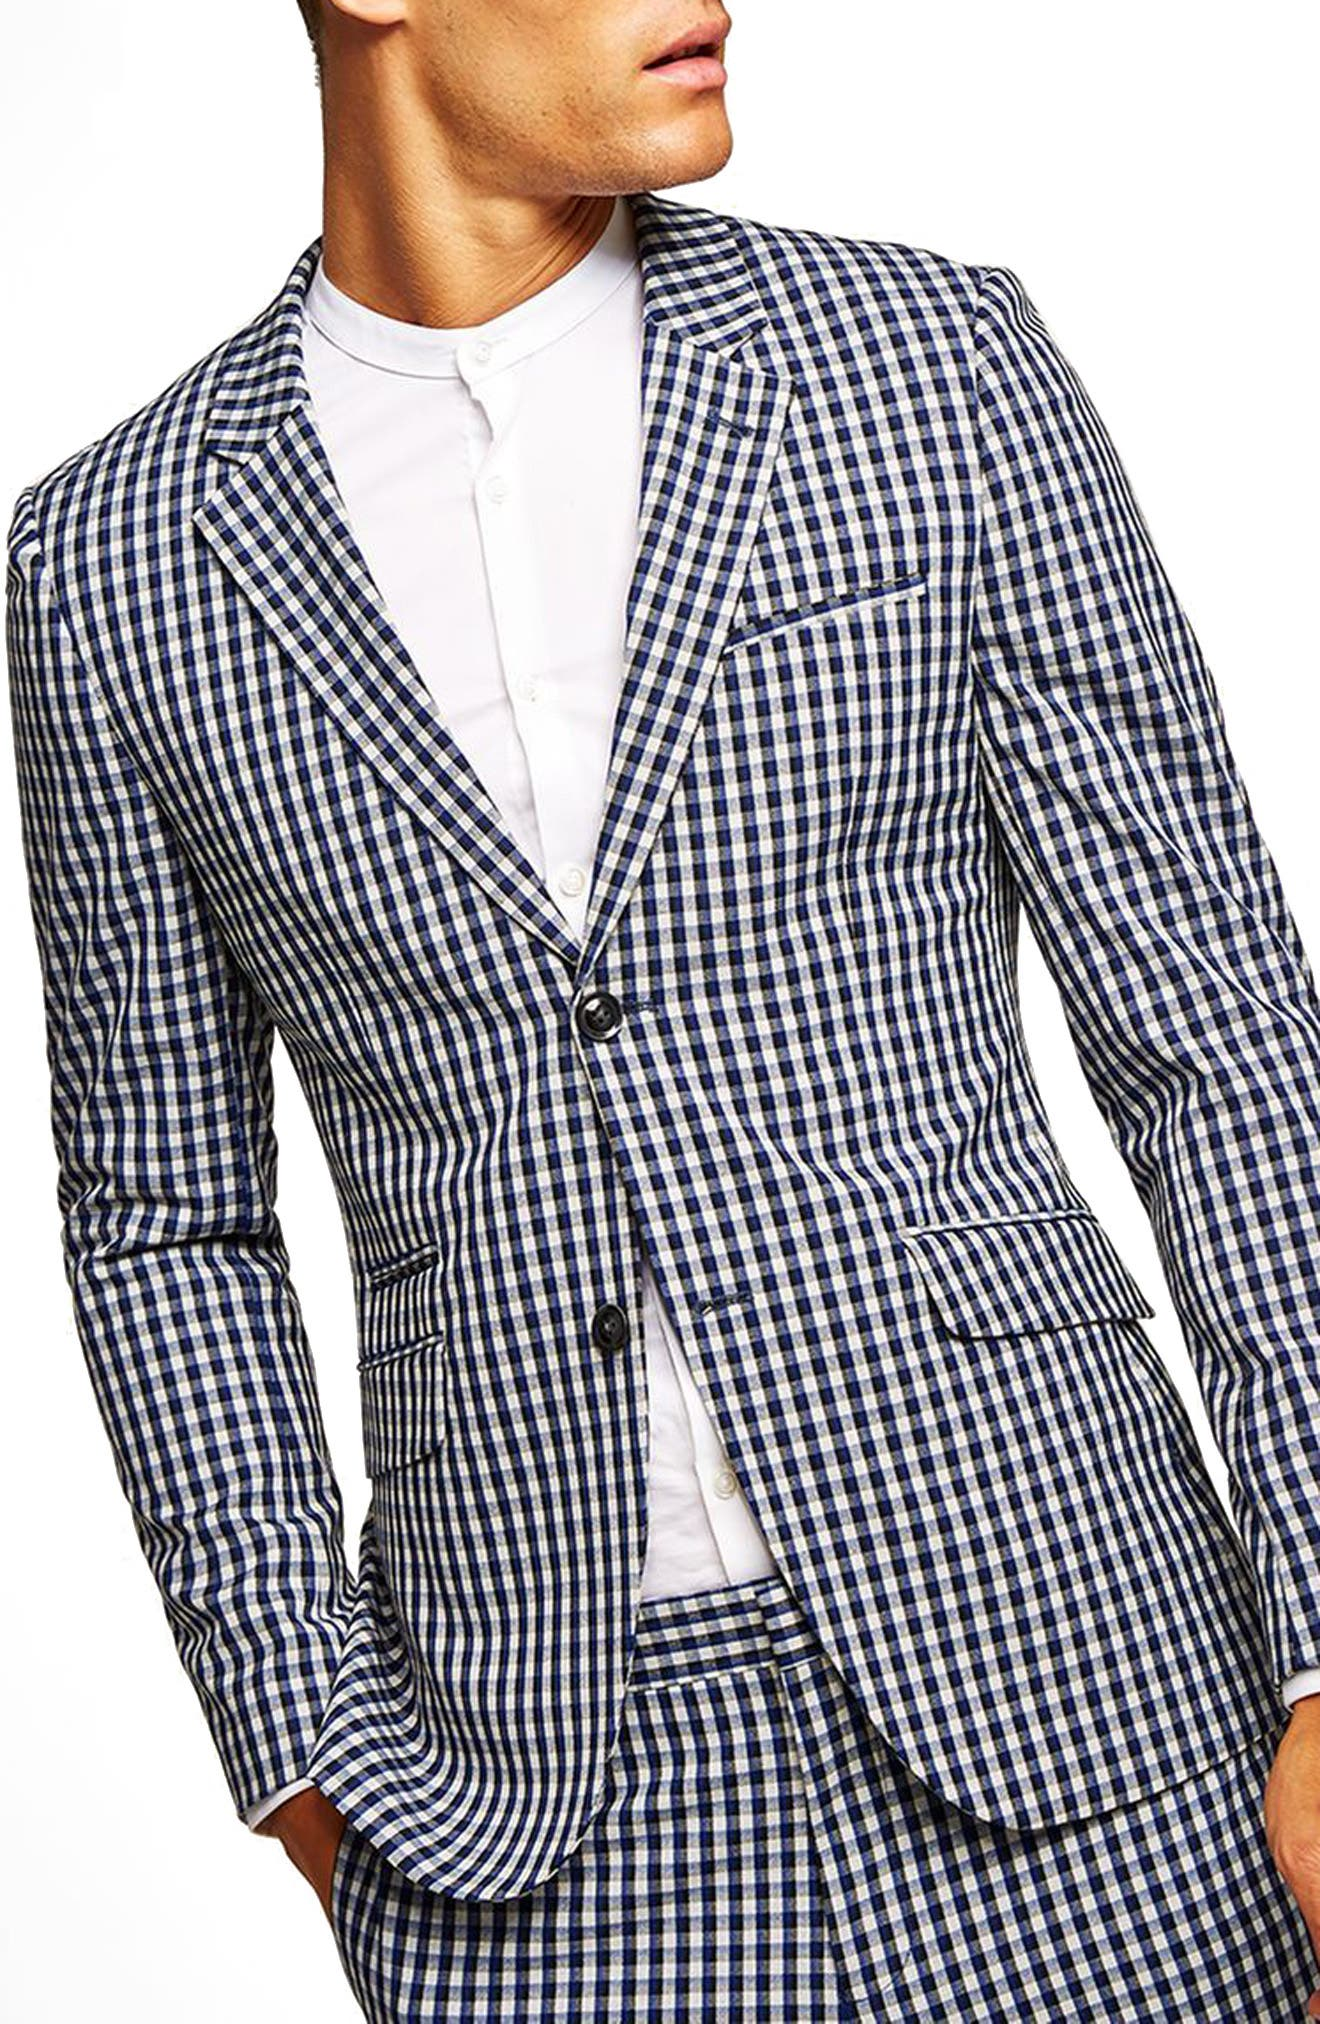 Muscle Fit Check Suit Jacket,                         Main,                         color, BLUE MULTI